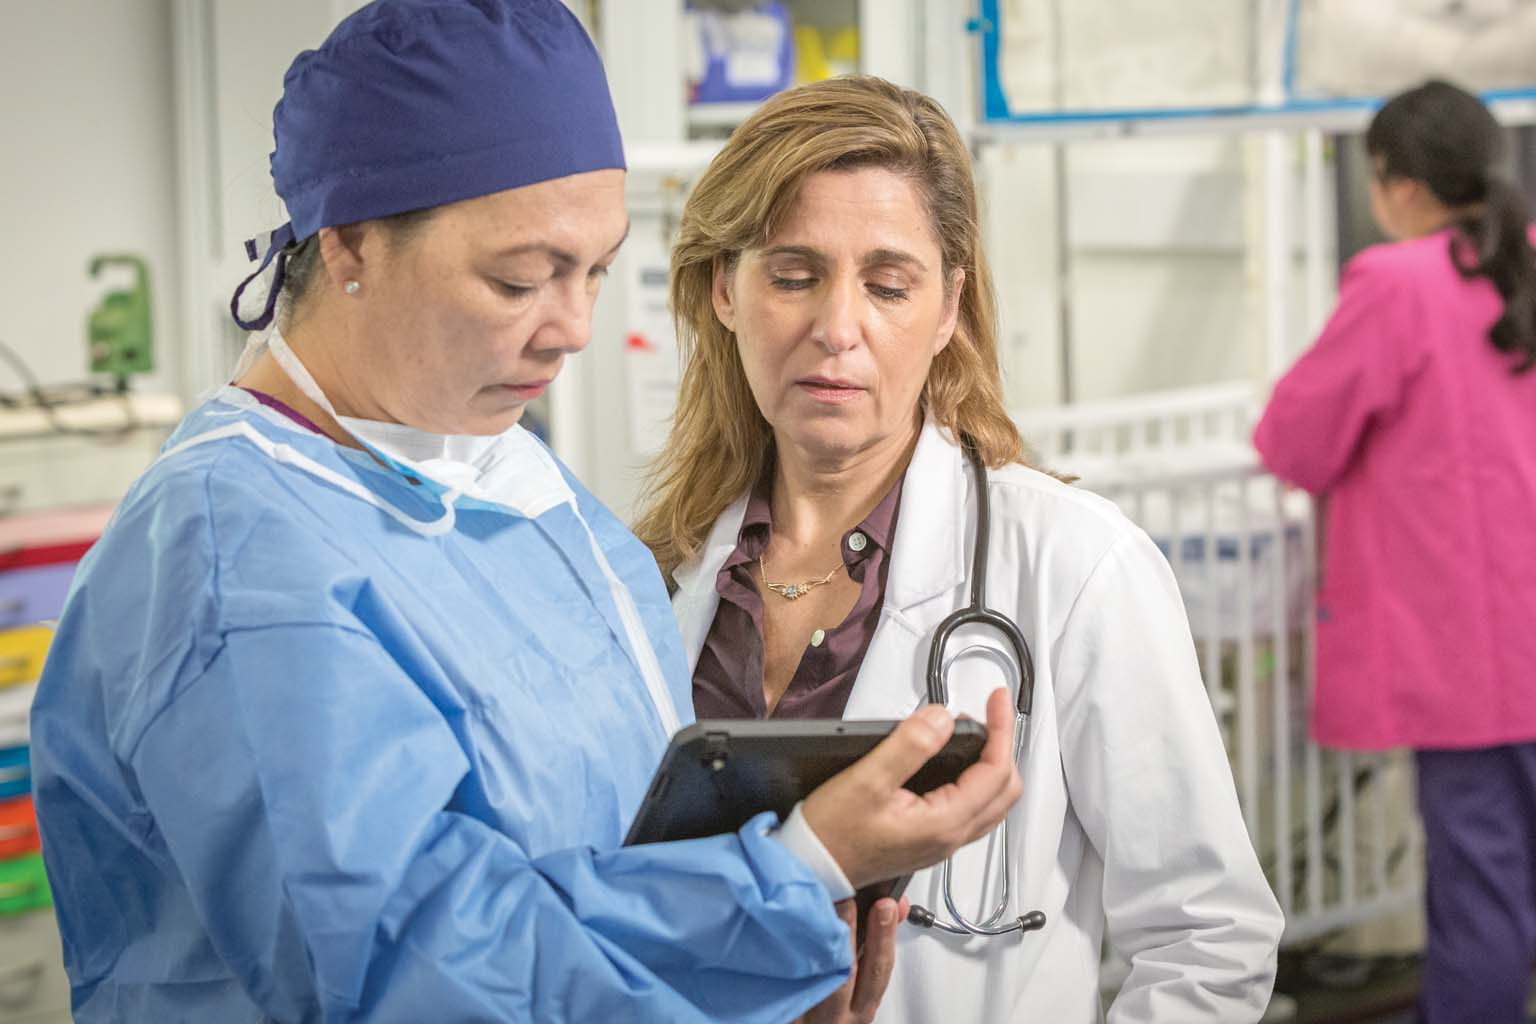 surgeon and doctory looking at tablet with nurse in background